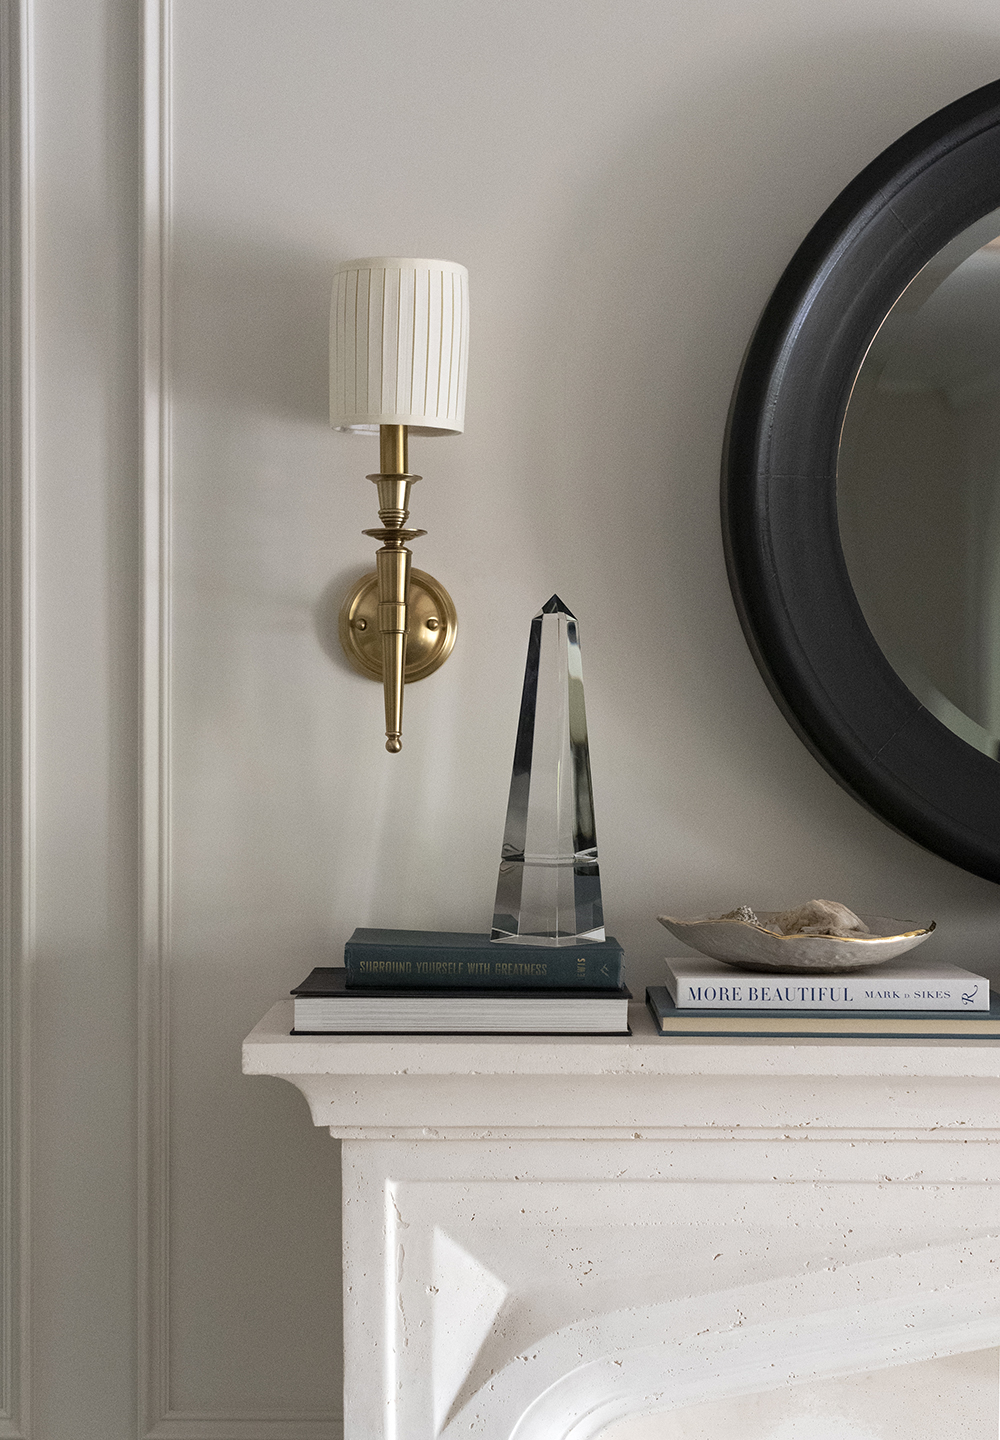 20 Classic & Affordable Light Fixtures From Amazon - roomfortuesday.com